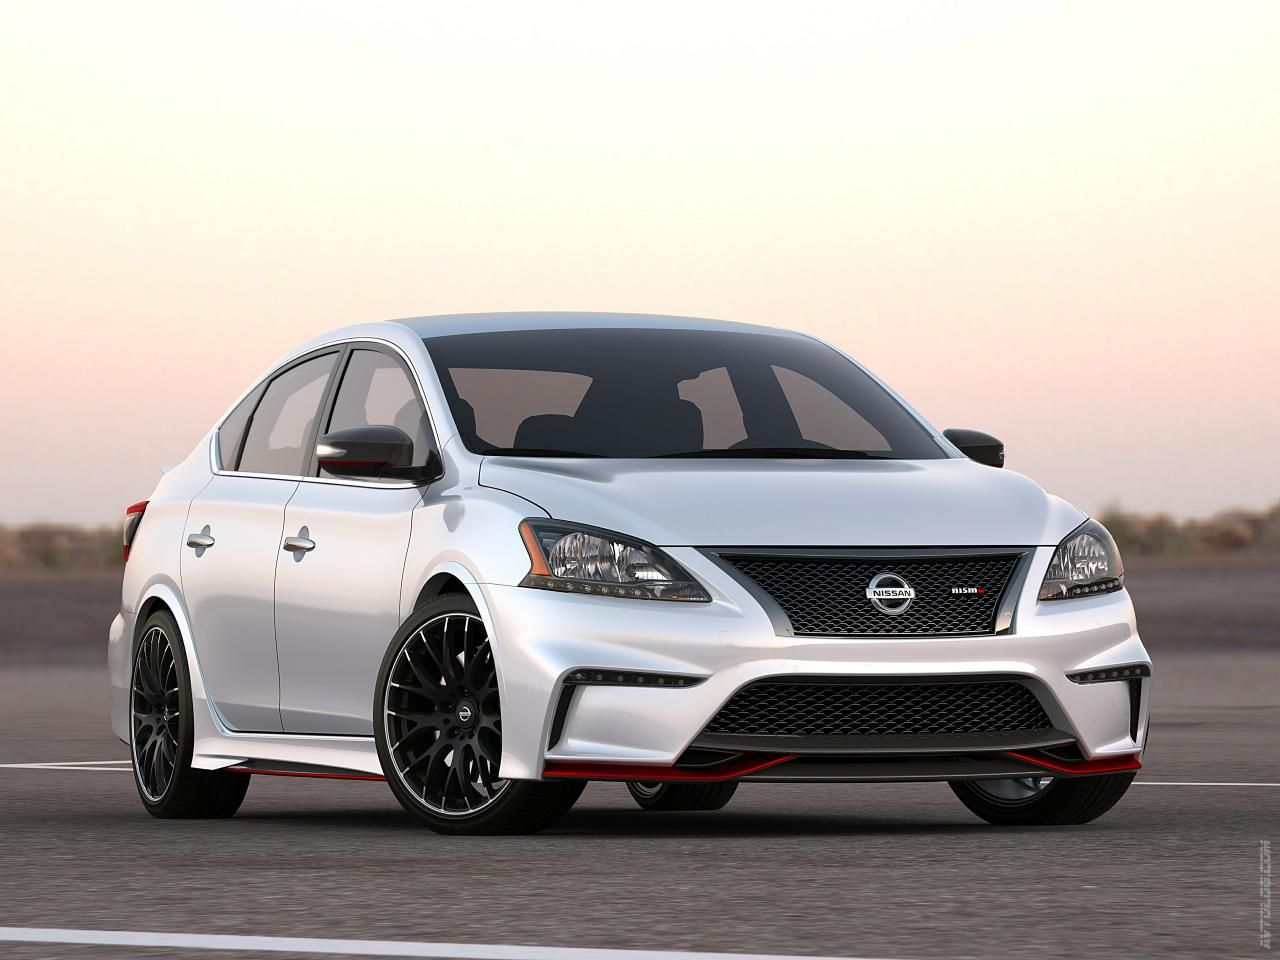 2016 nissan sentra nismo specs 2016 nissan sentra nismo specs of late the words sentra and energy once in a while show up in the same sentence